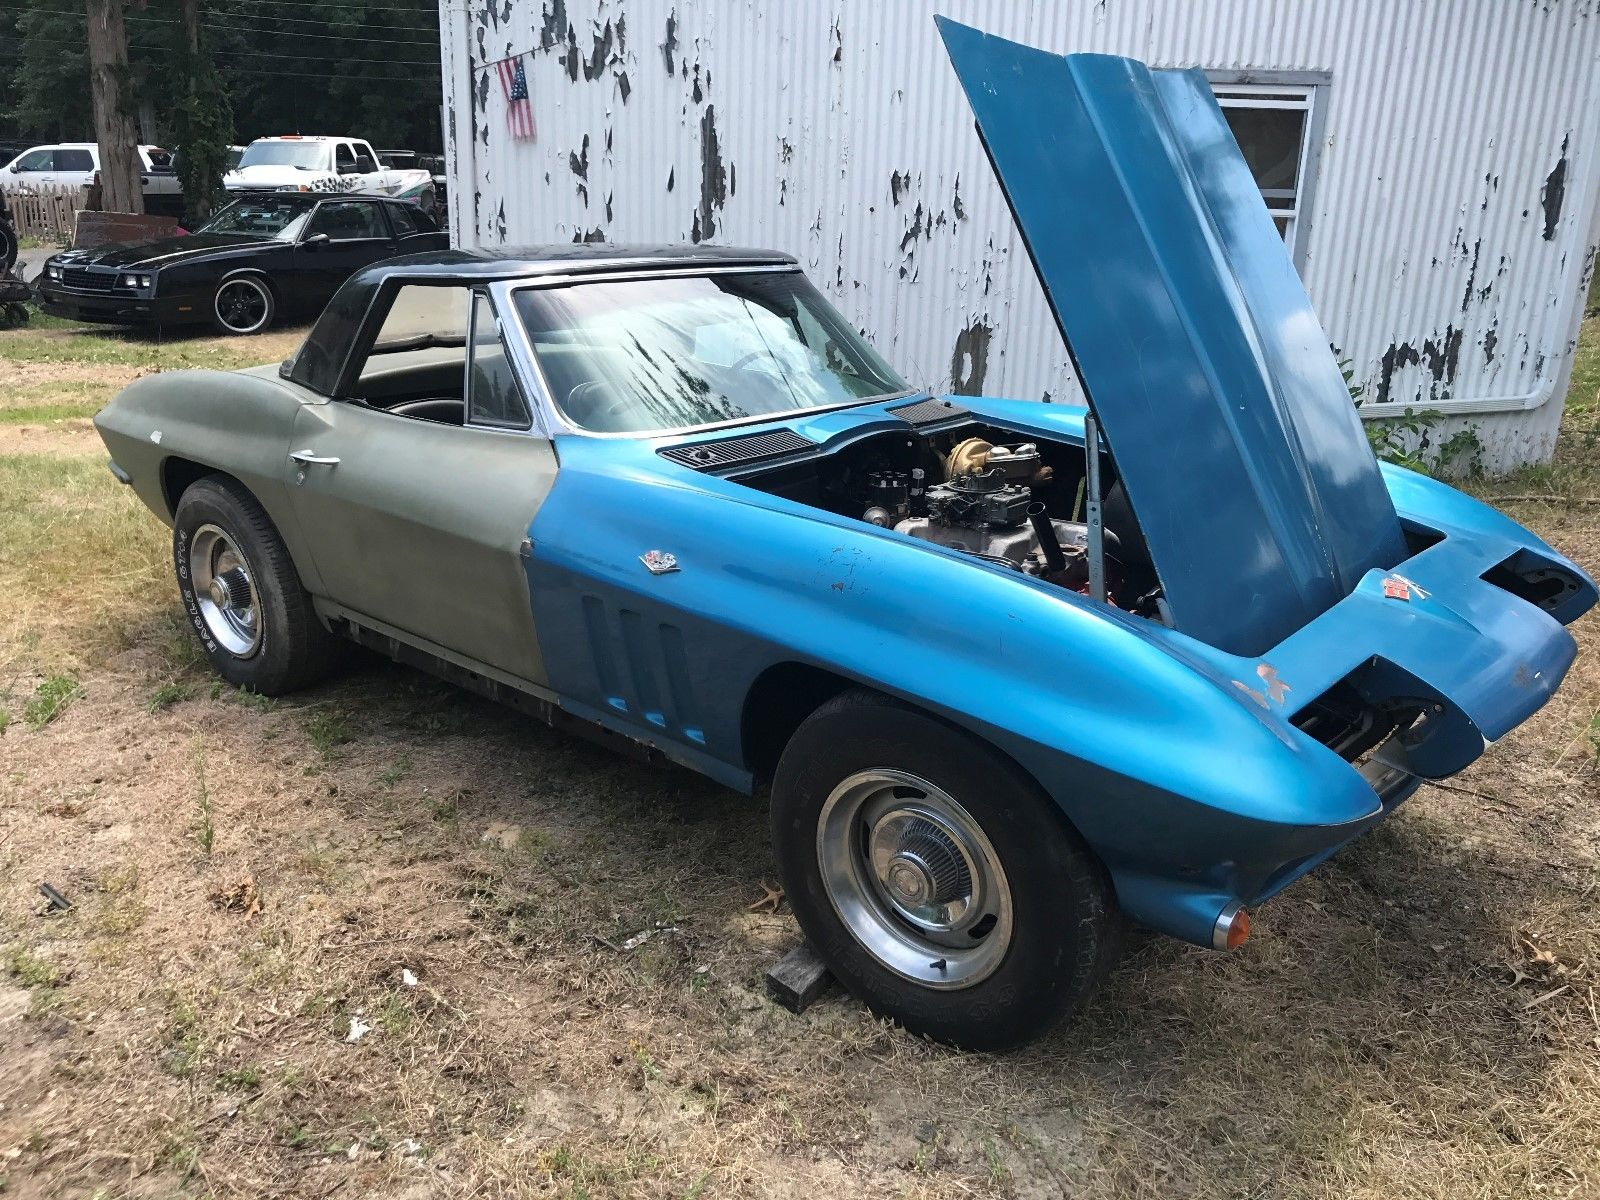 corvette project cars for sale Find chevrolet corvette at the best price we have 112 cars for sale for project chevrolet corvette, from just $3,100 - page 2.